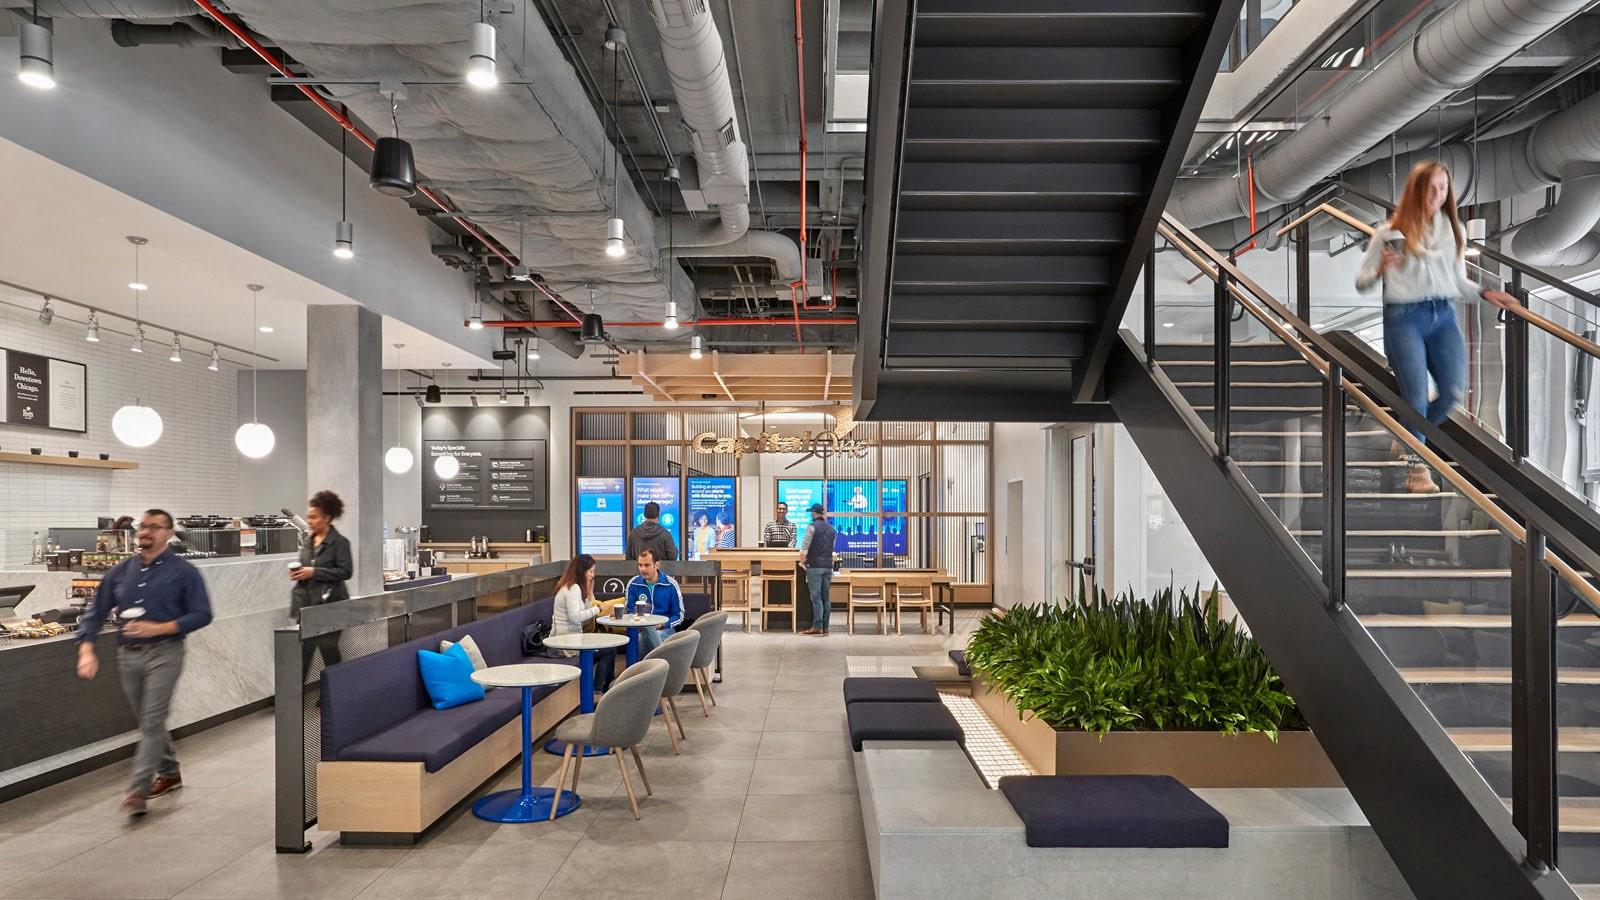 Capital One Café Stairs and Cafe